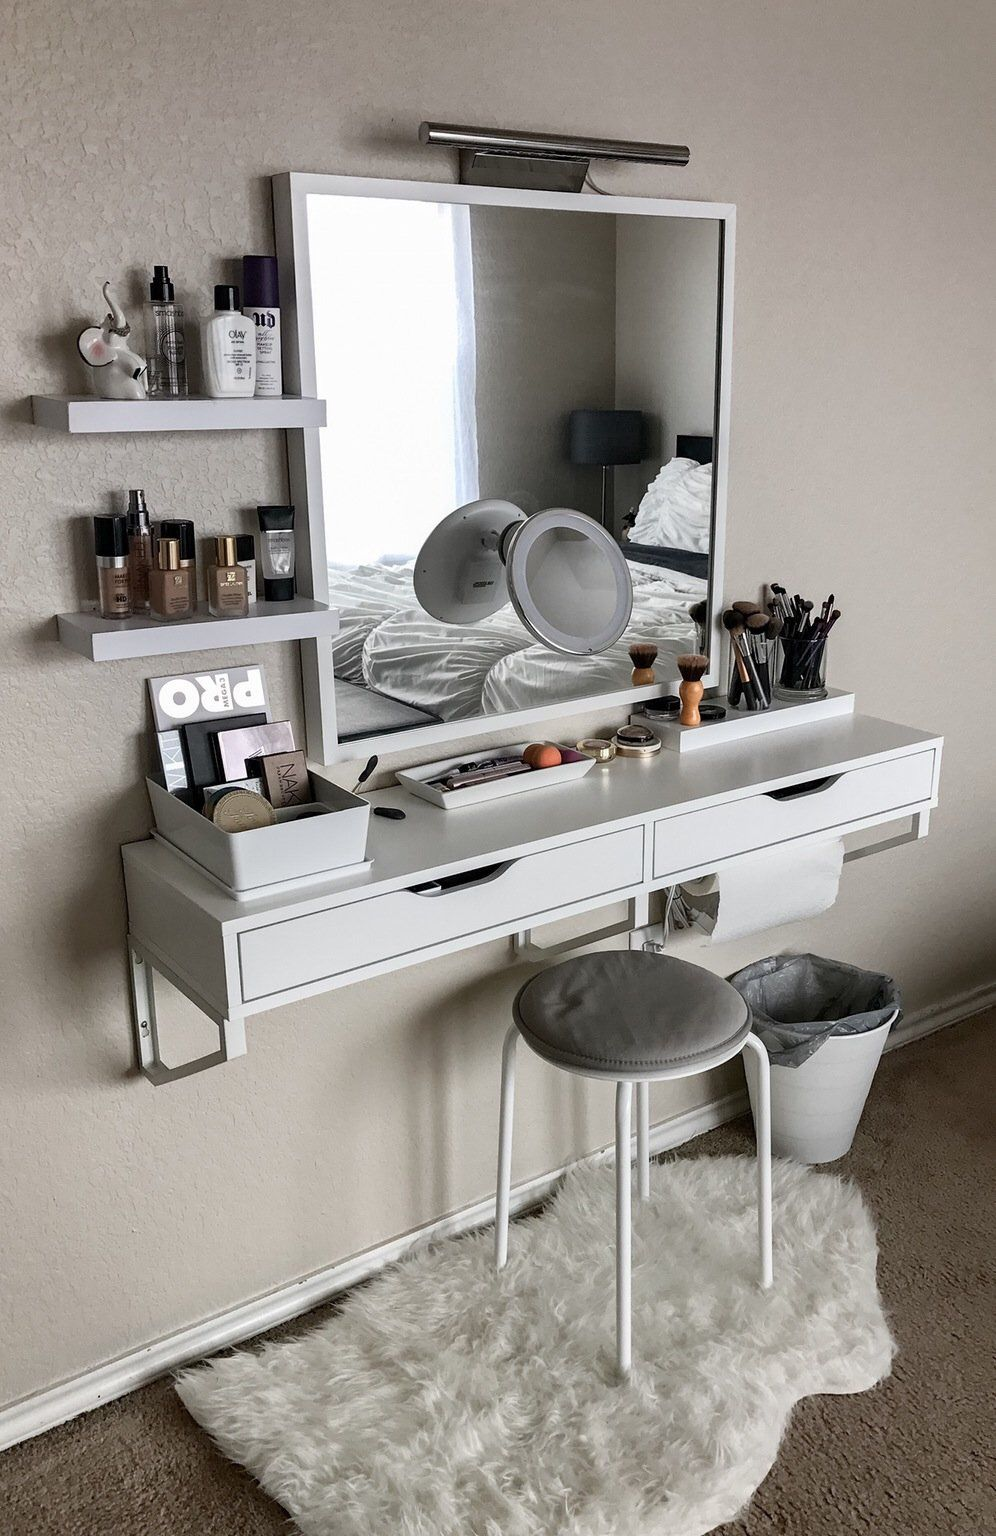 makeup station has interiror and with file unnamed home bathroom exteriro table double vanity latest ebdbabbebb